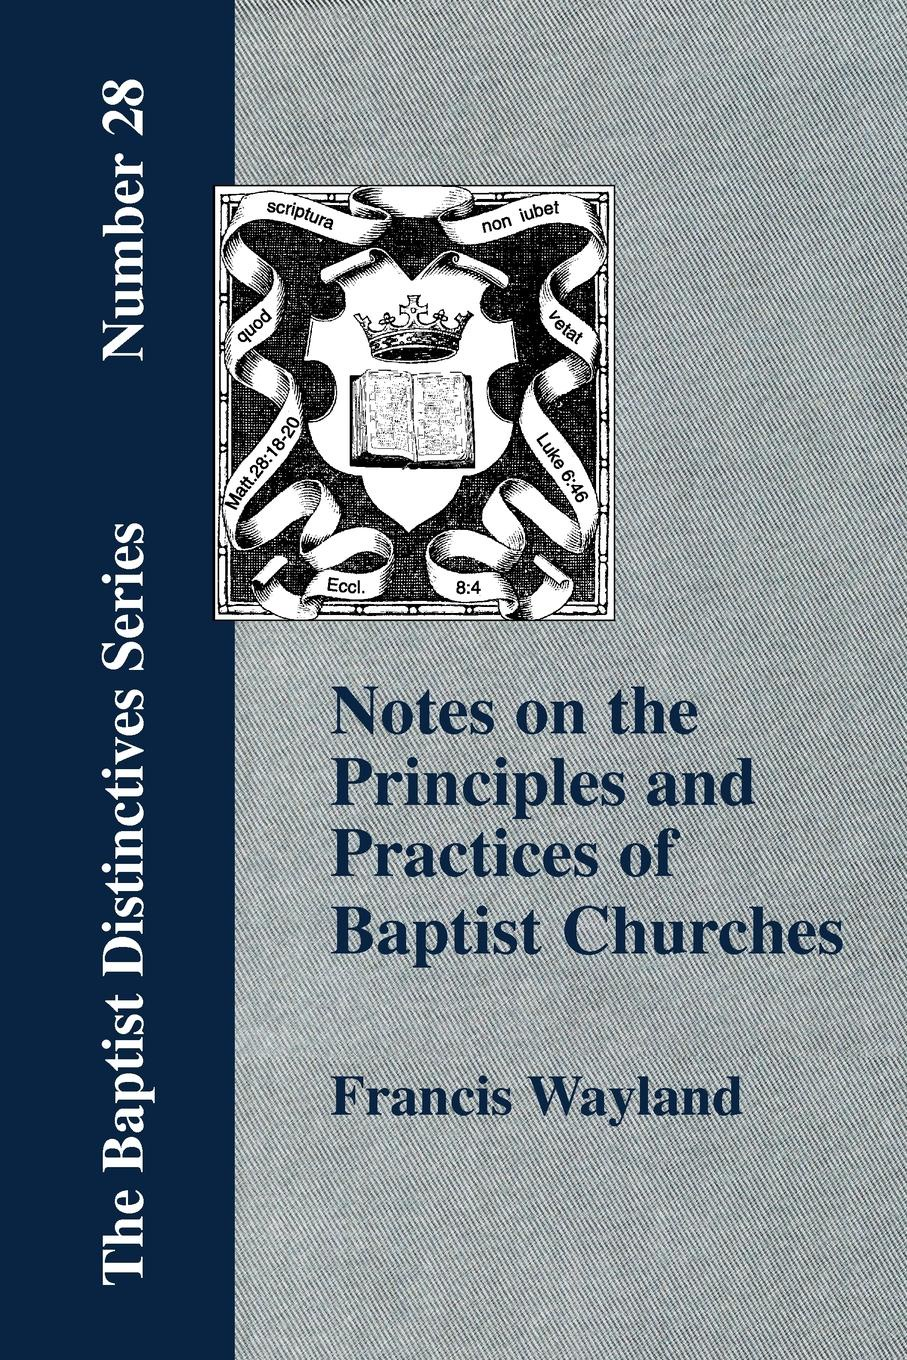 Francis Wayland Notes on the Principles and Practices of Baptist Churches notes on the cuff